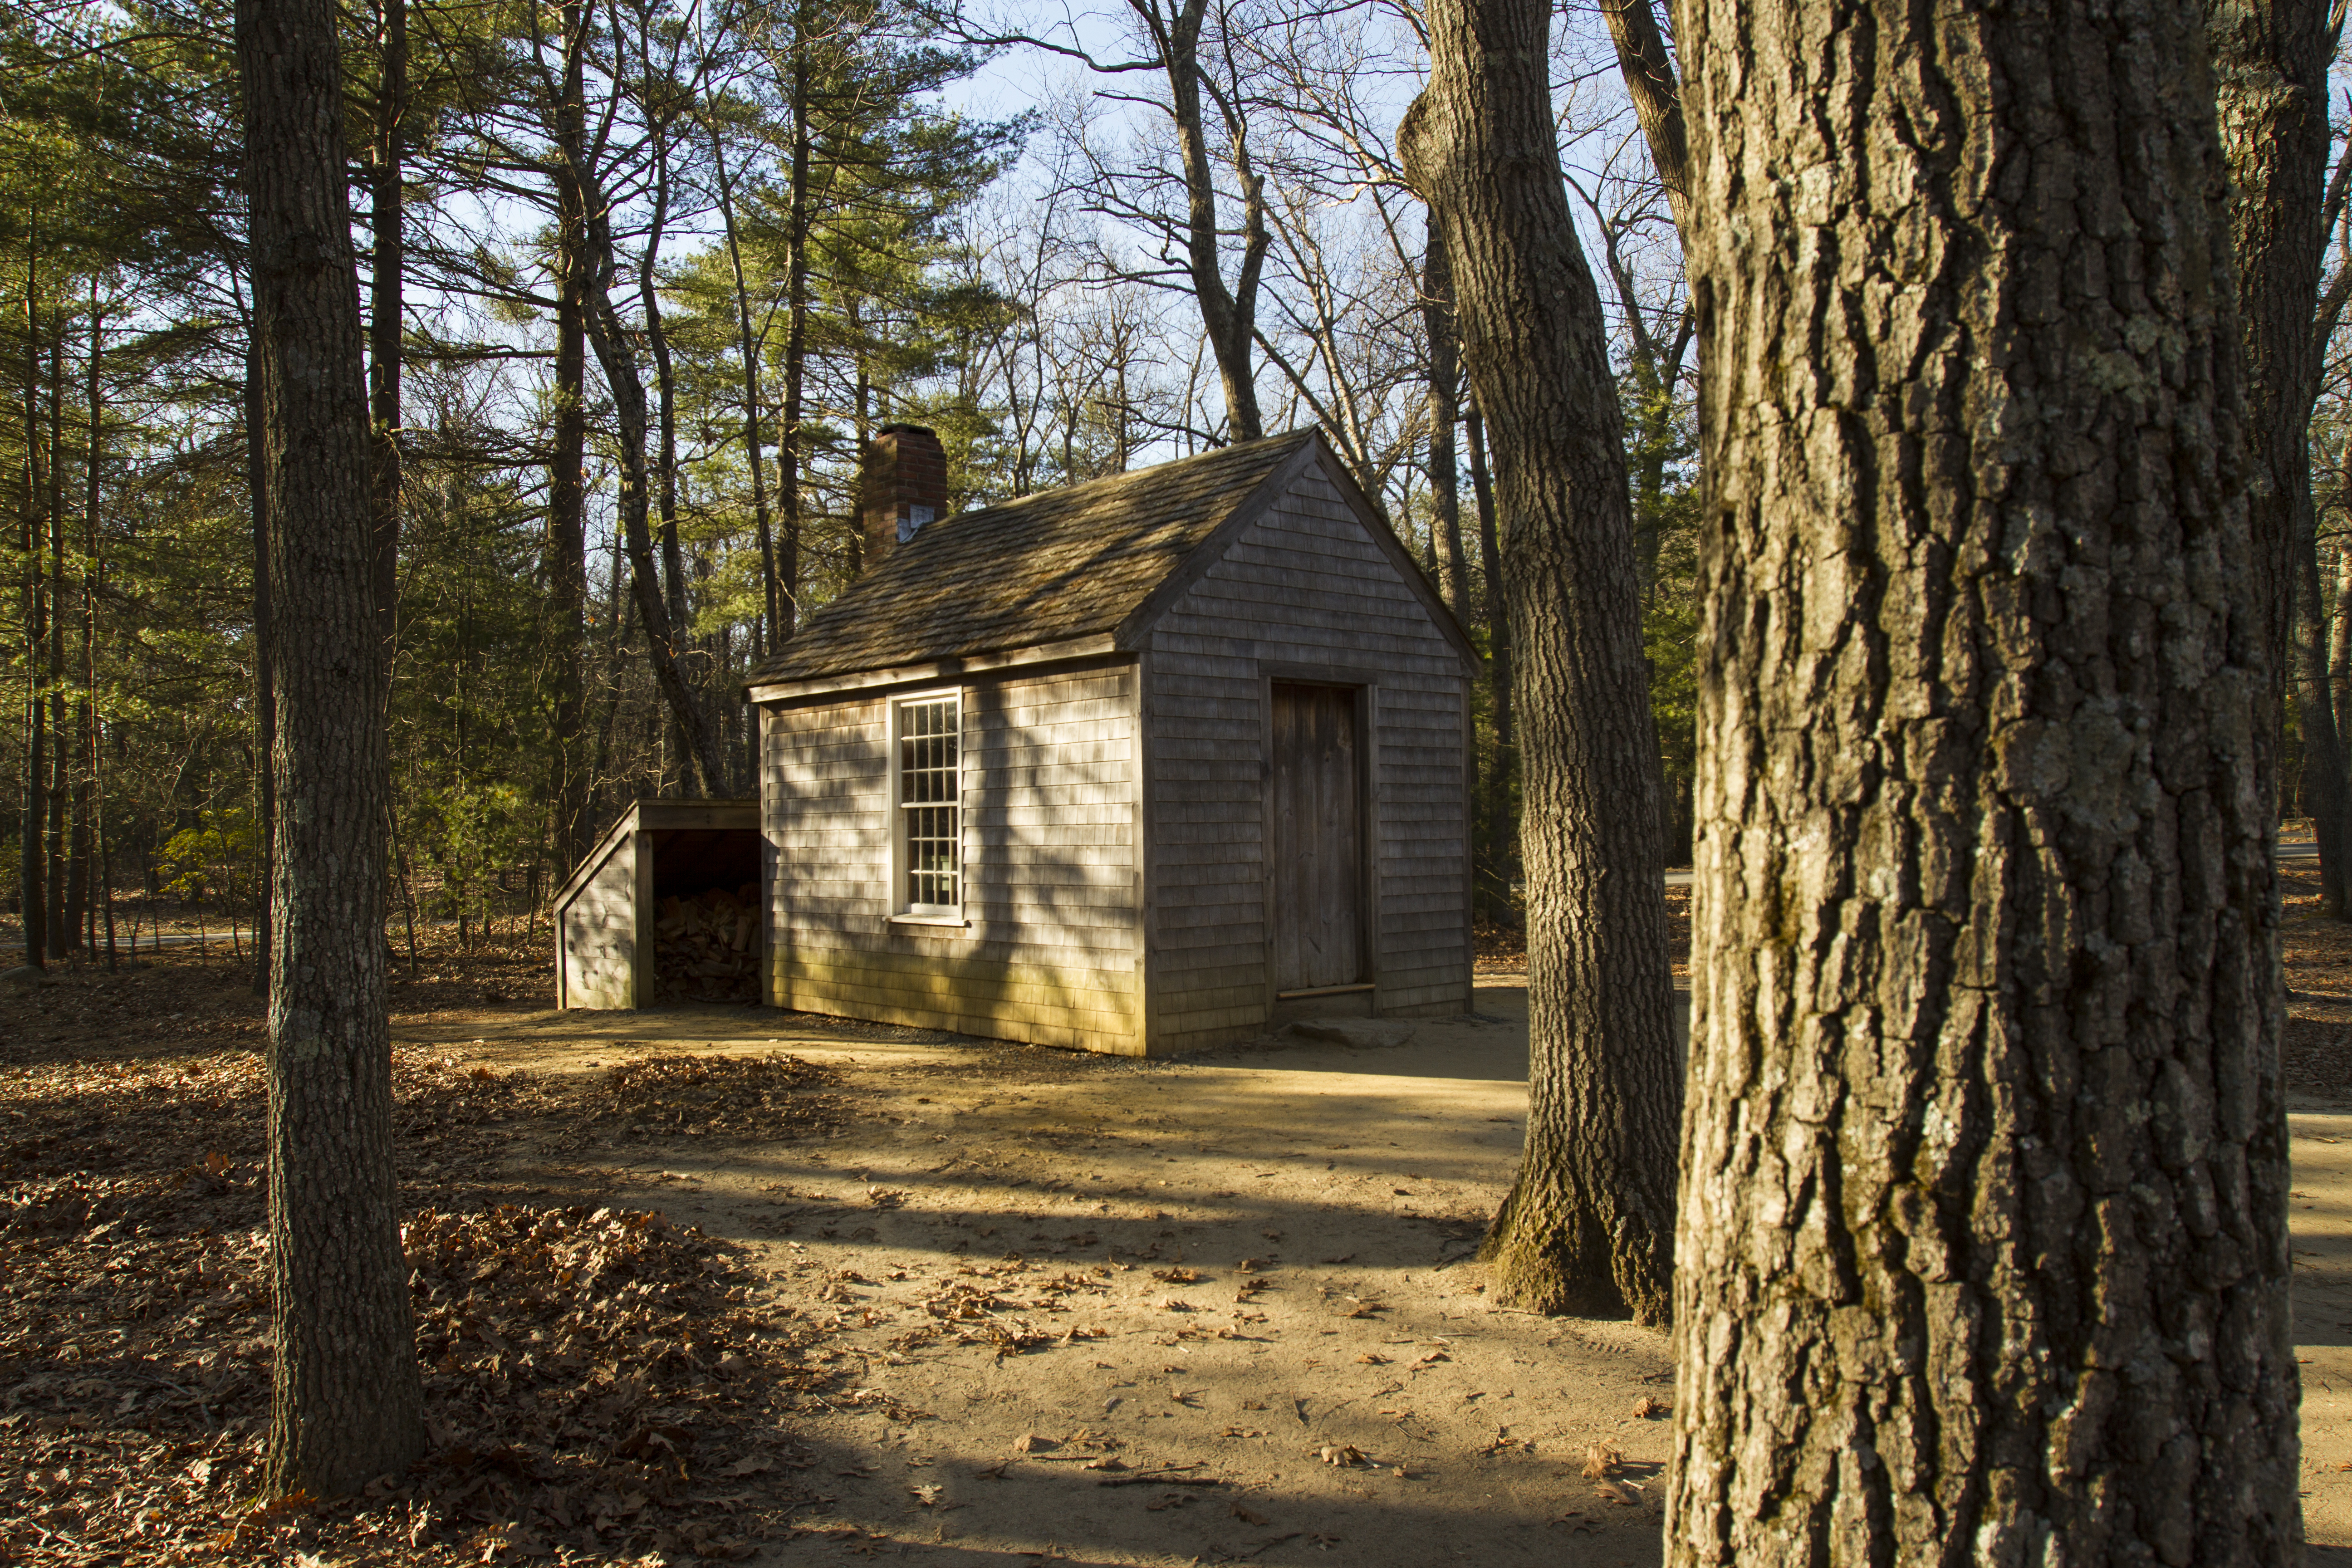 Recreation of Thoreau's Cabin at Walden Pond in Massachusetts. (Getty Images)